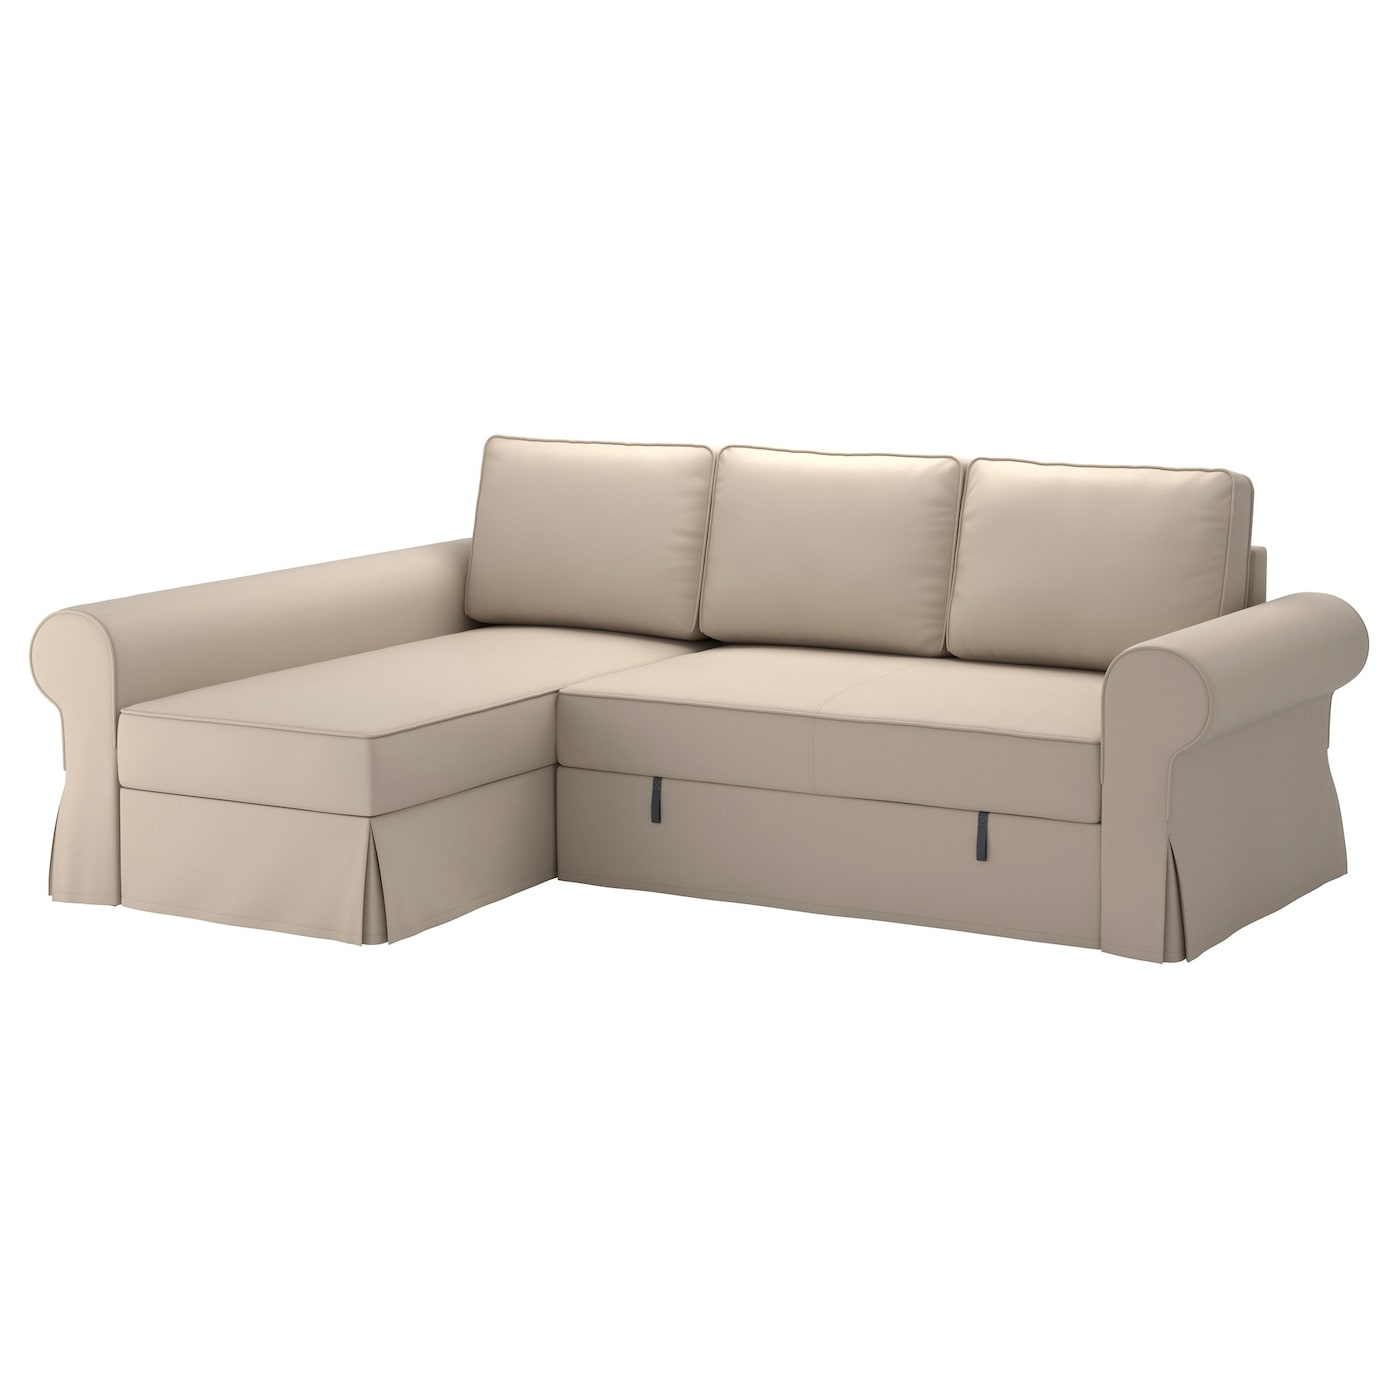 Backabro Sofa Bed With Chaise Longue Ramna Beige Ikea